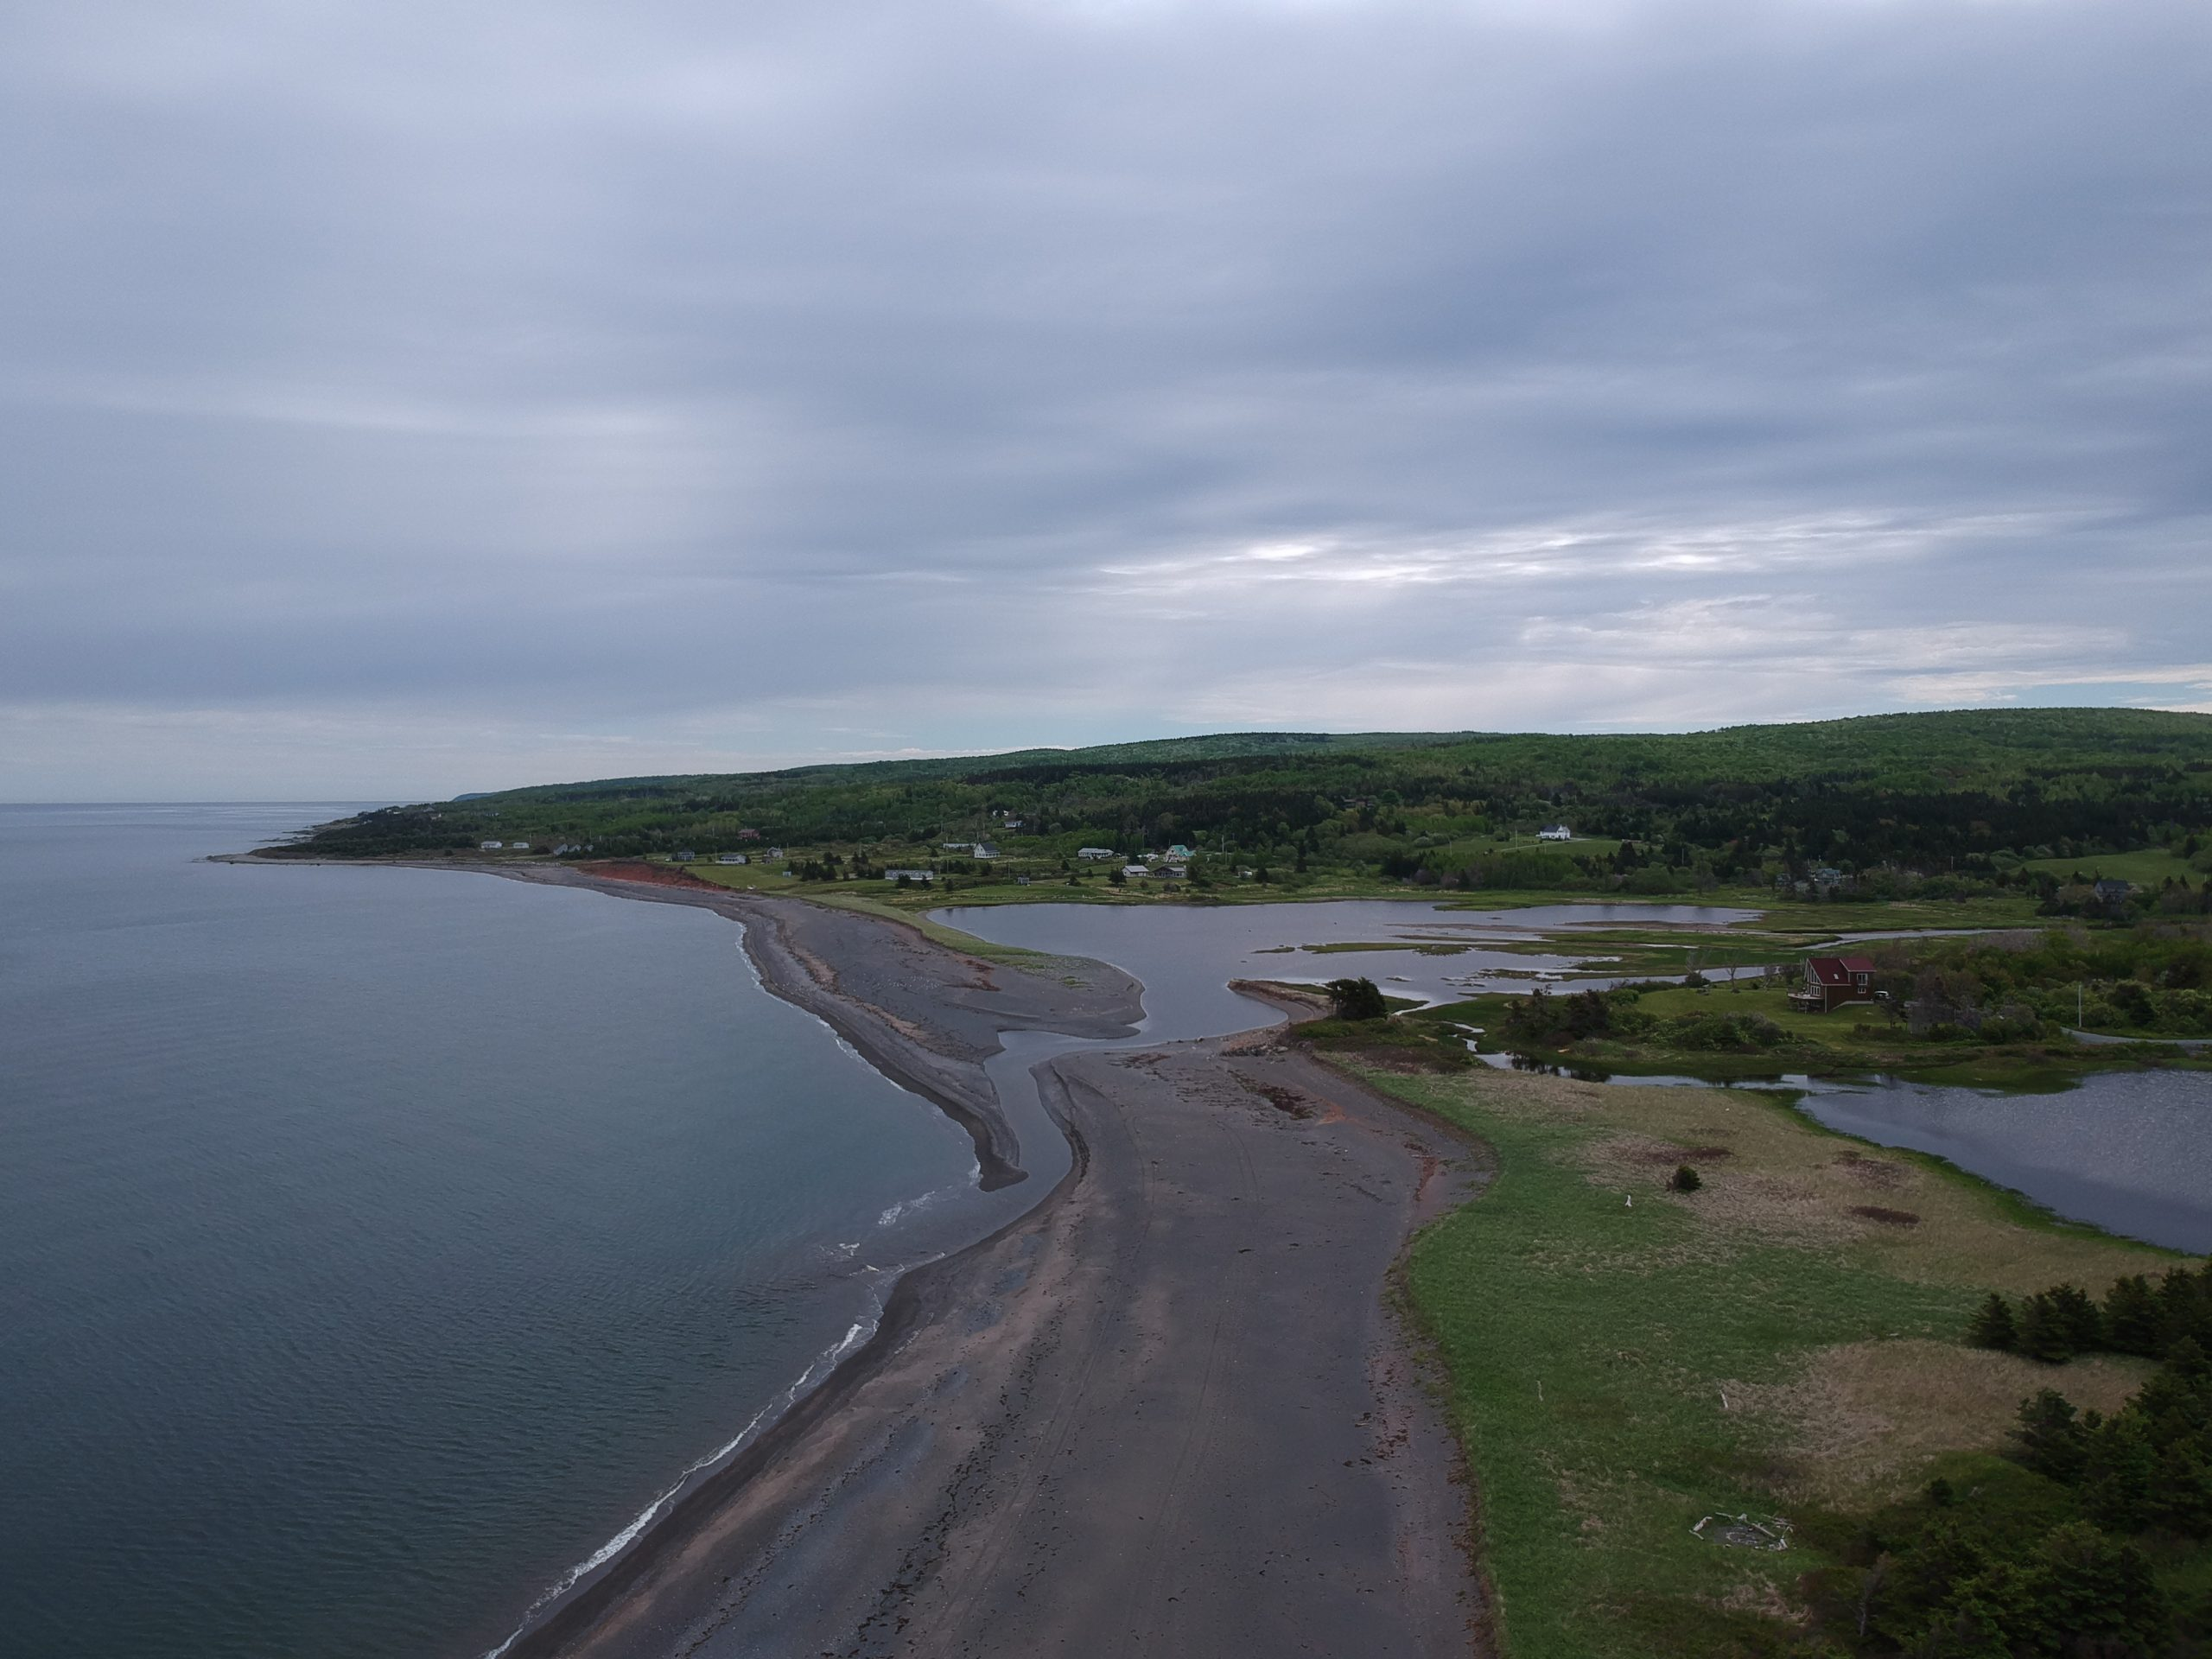 Malignant Cove Beach in Antigonish Nova Scotia